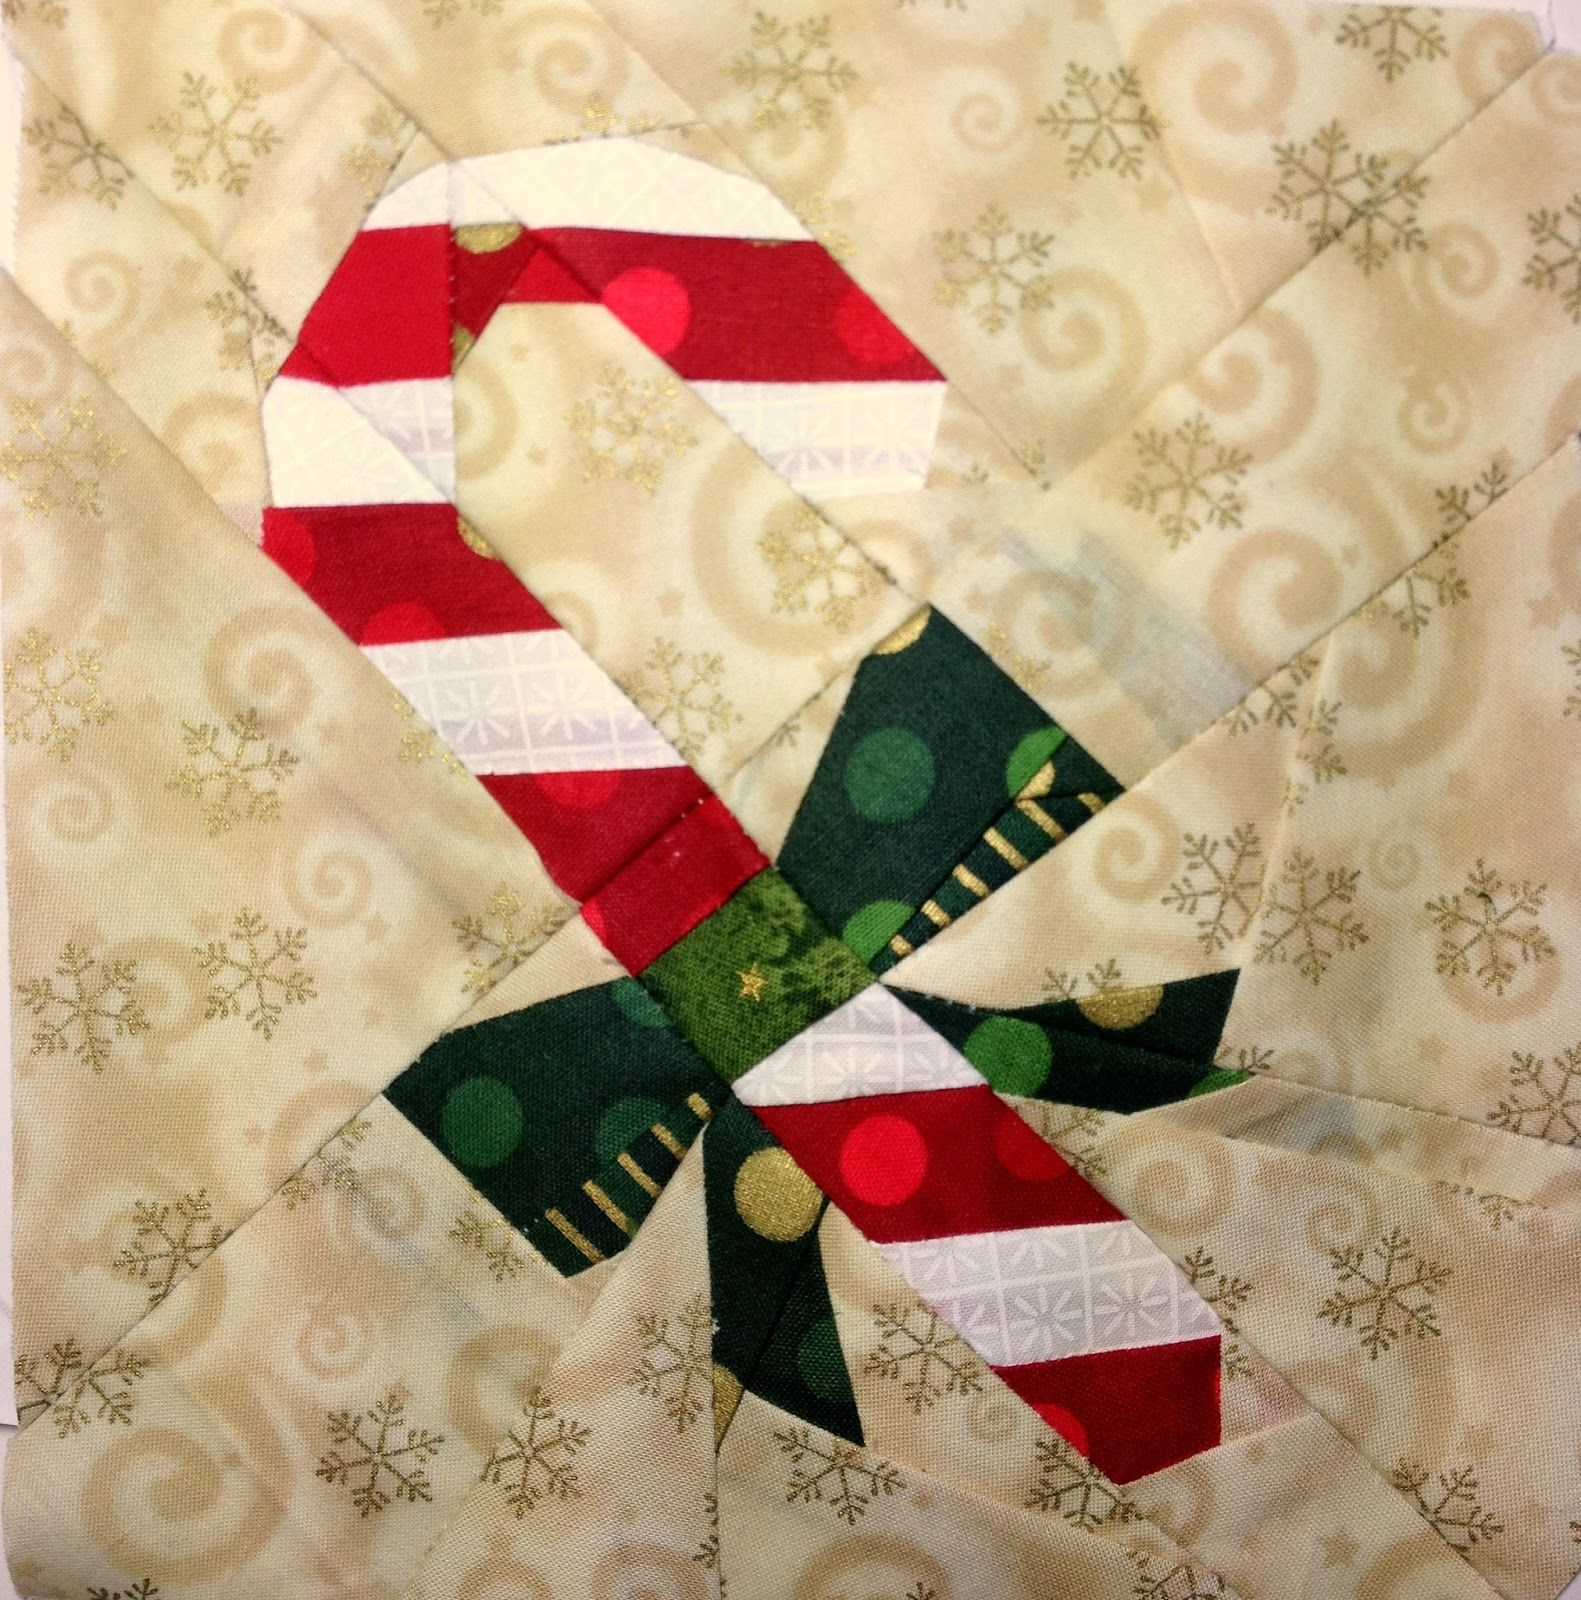 Candy Cane block design by Janeen at Quilt Art Designs, from the ... : quilt art magazine - Adamdwight.com